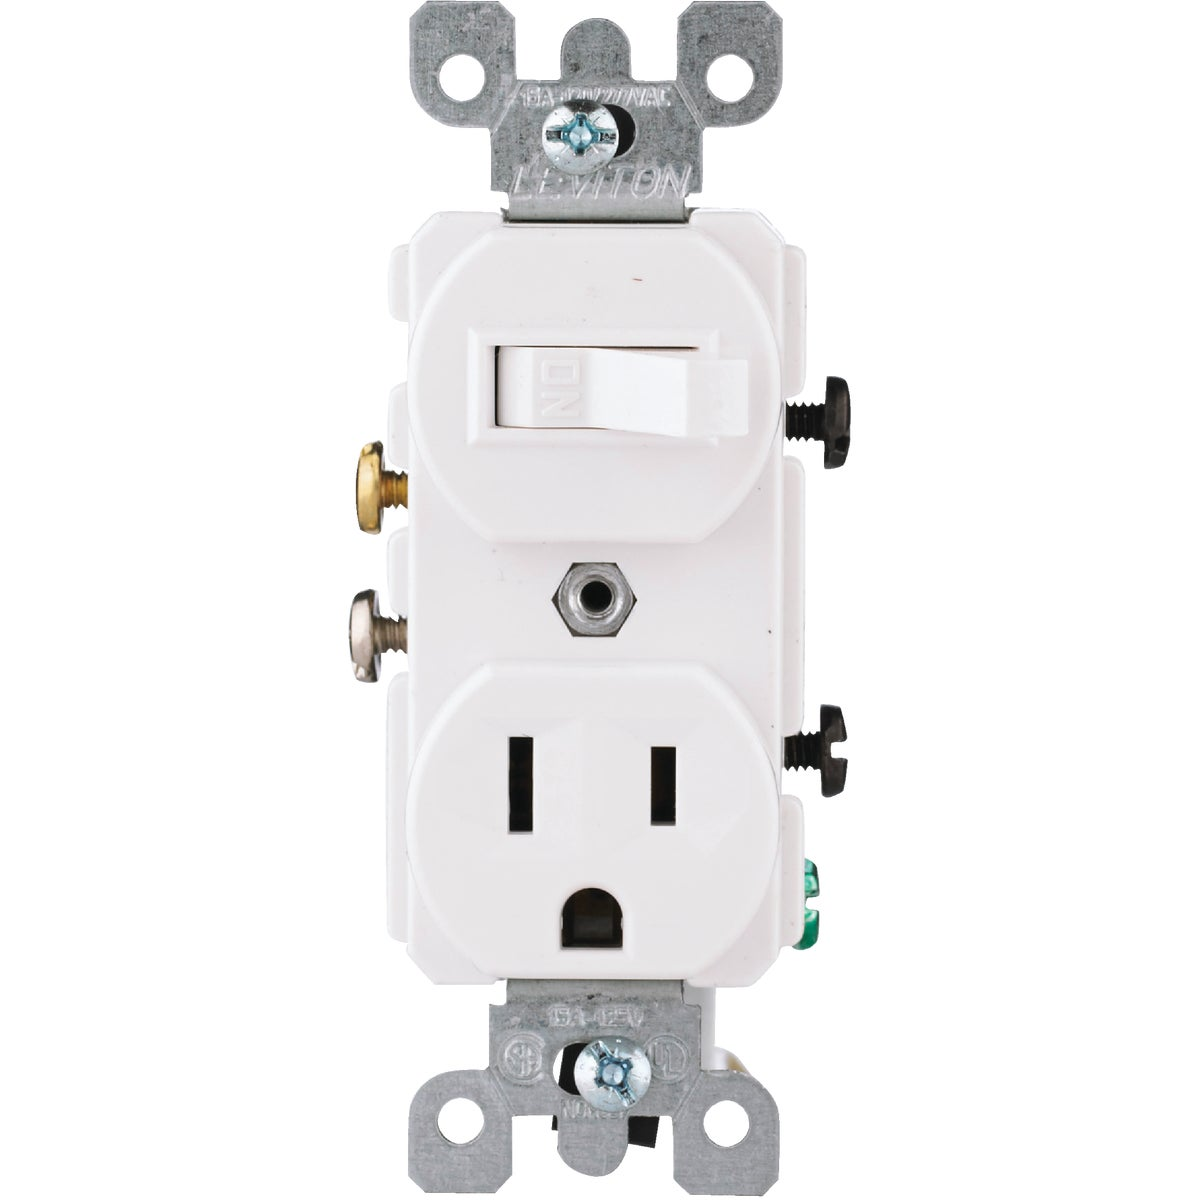 WHT SWITCH/OUTLET - 52250WS by Leviton Mfg Co